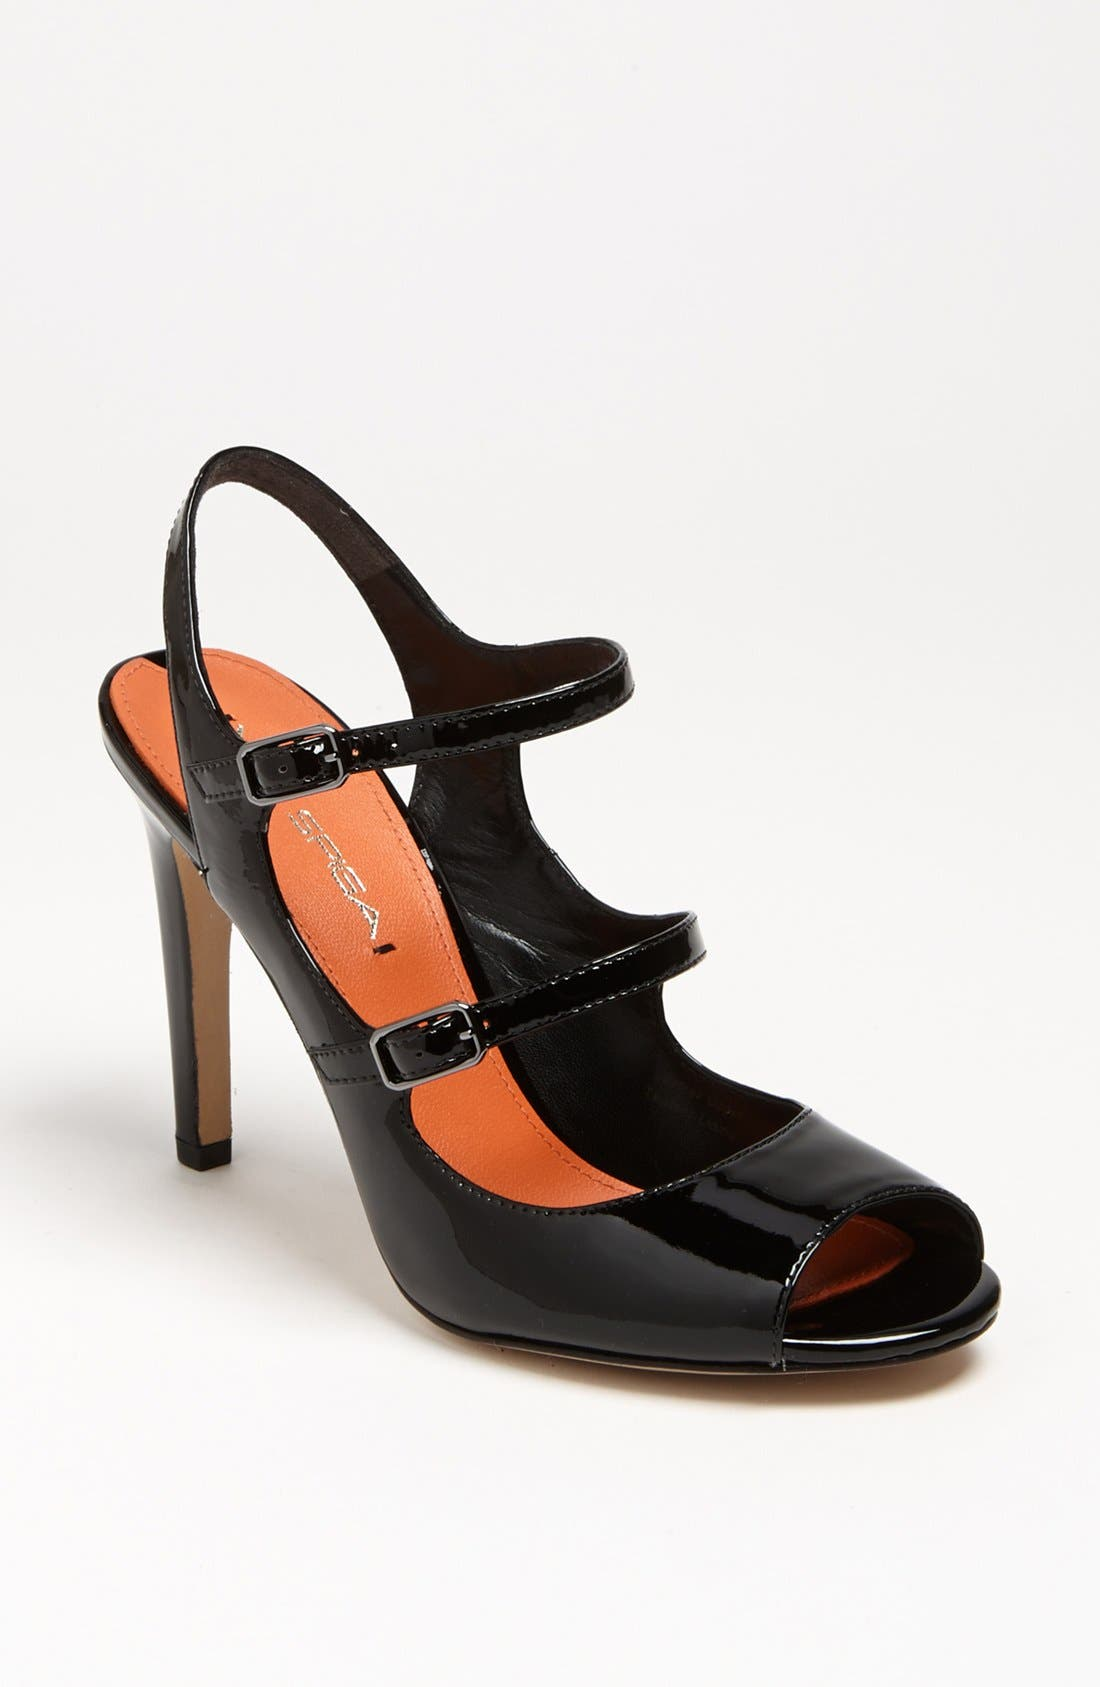 Via Spiga Sandals 'ROSEANNE' SANDAL